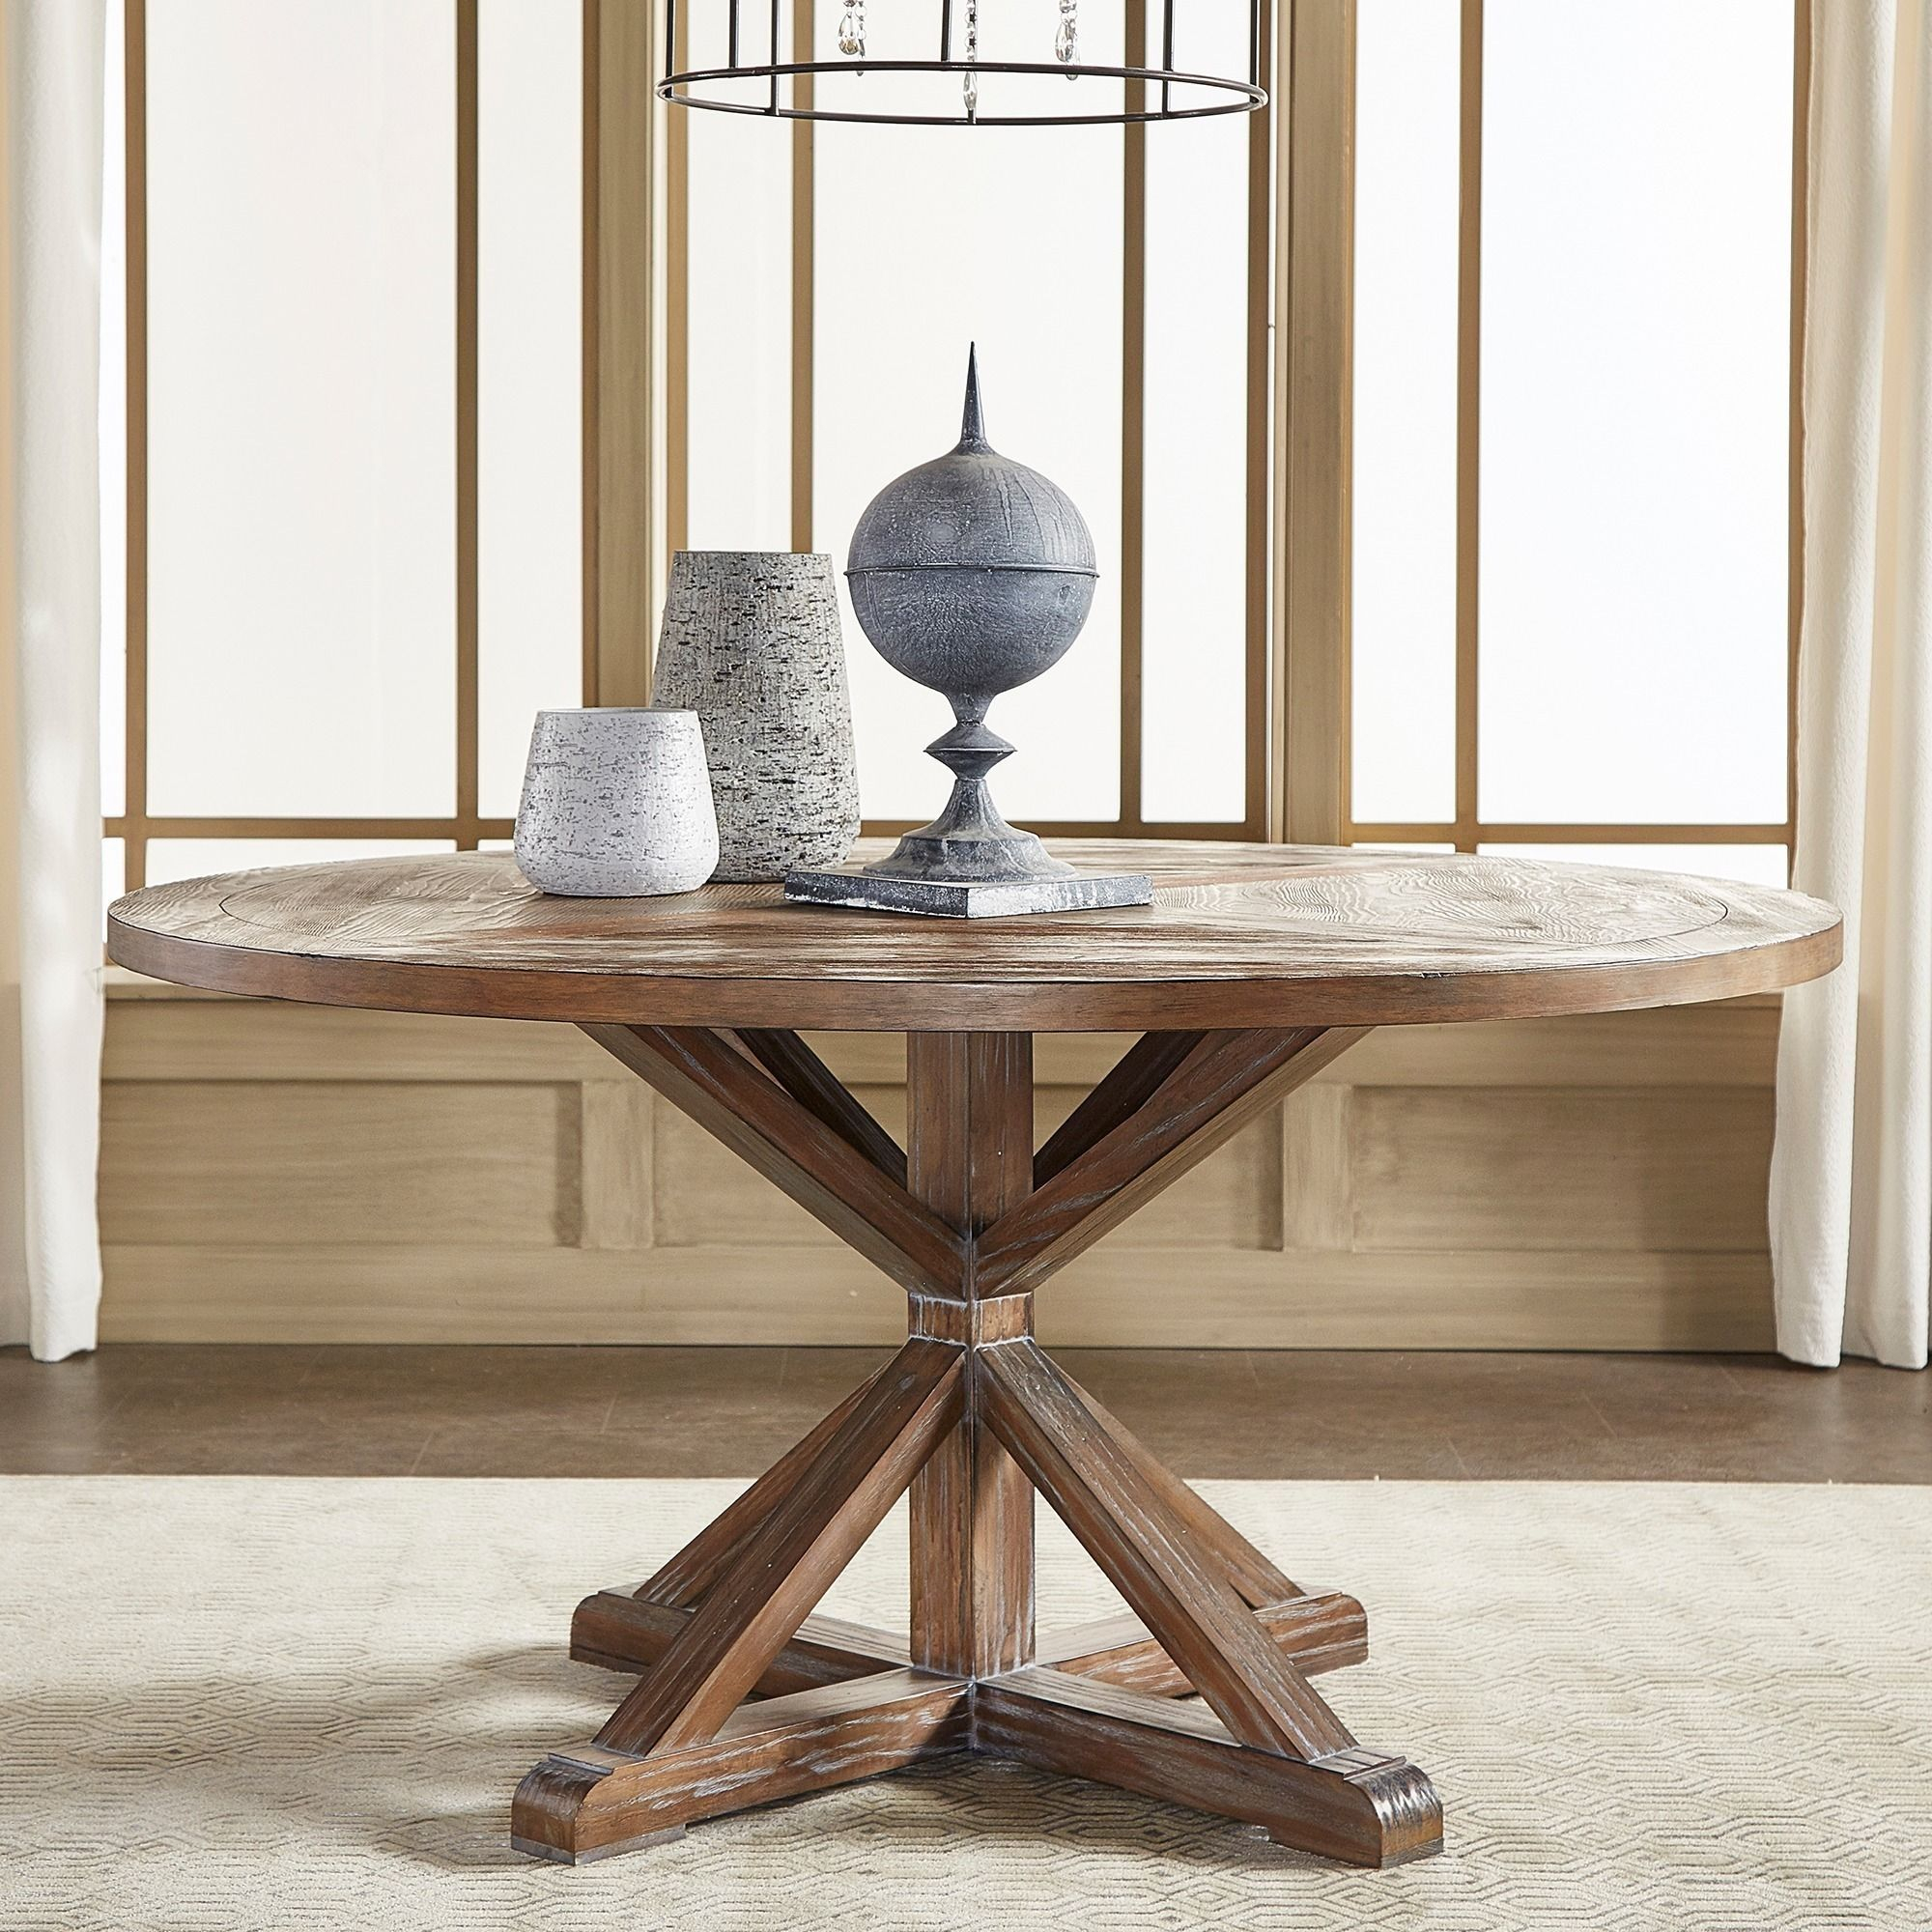 Benchwright Rustic X Base Round Pine Wood Dining Table For Most Popular Benchwright Round Pedestal Dining Tables (View 5 of 25)